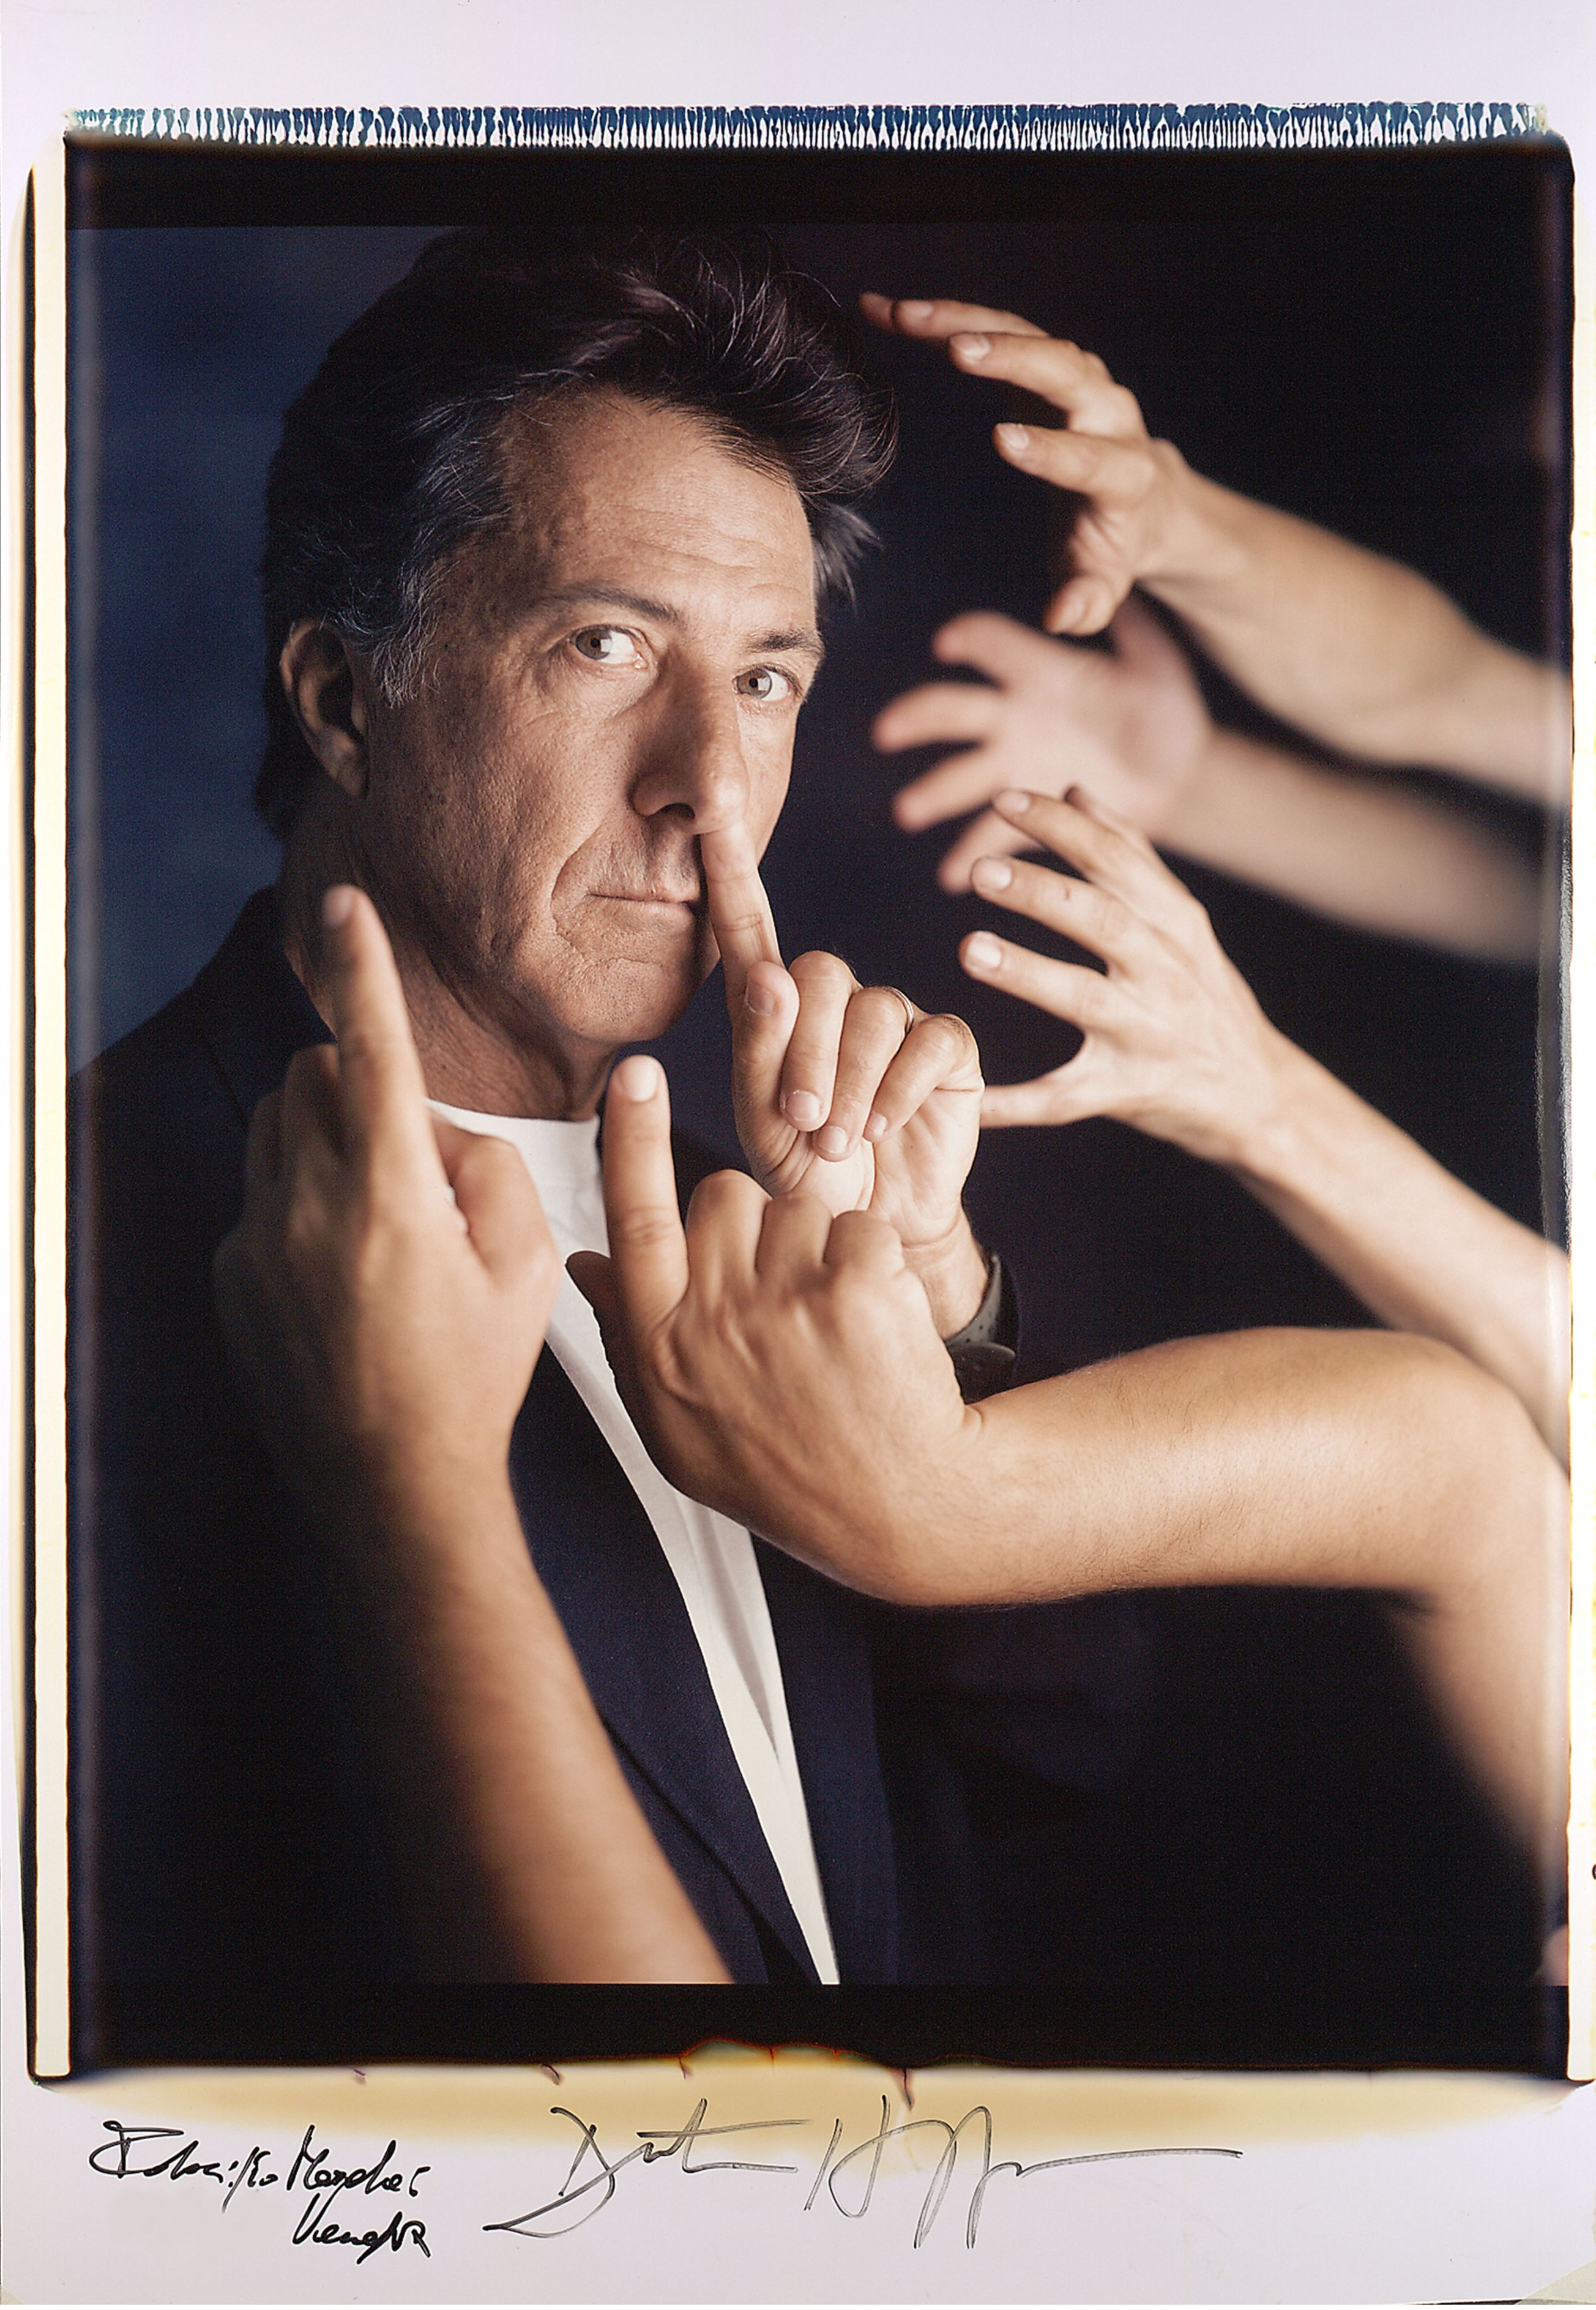 Dustin Hoffman, Venezia 1996 (foto di Fabrizio Marchesi/ Photomovie)